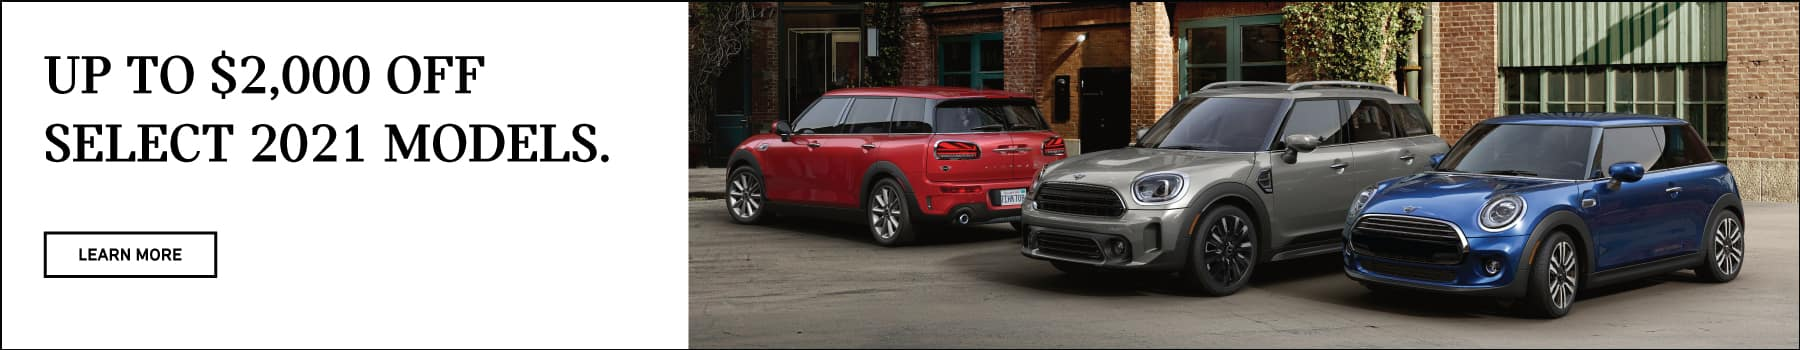 Up to $2000 off select MINI models.